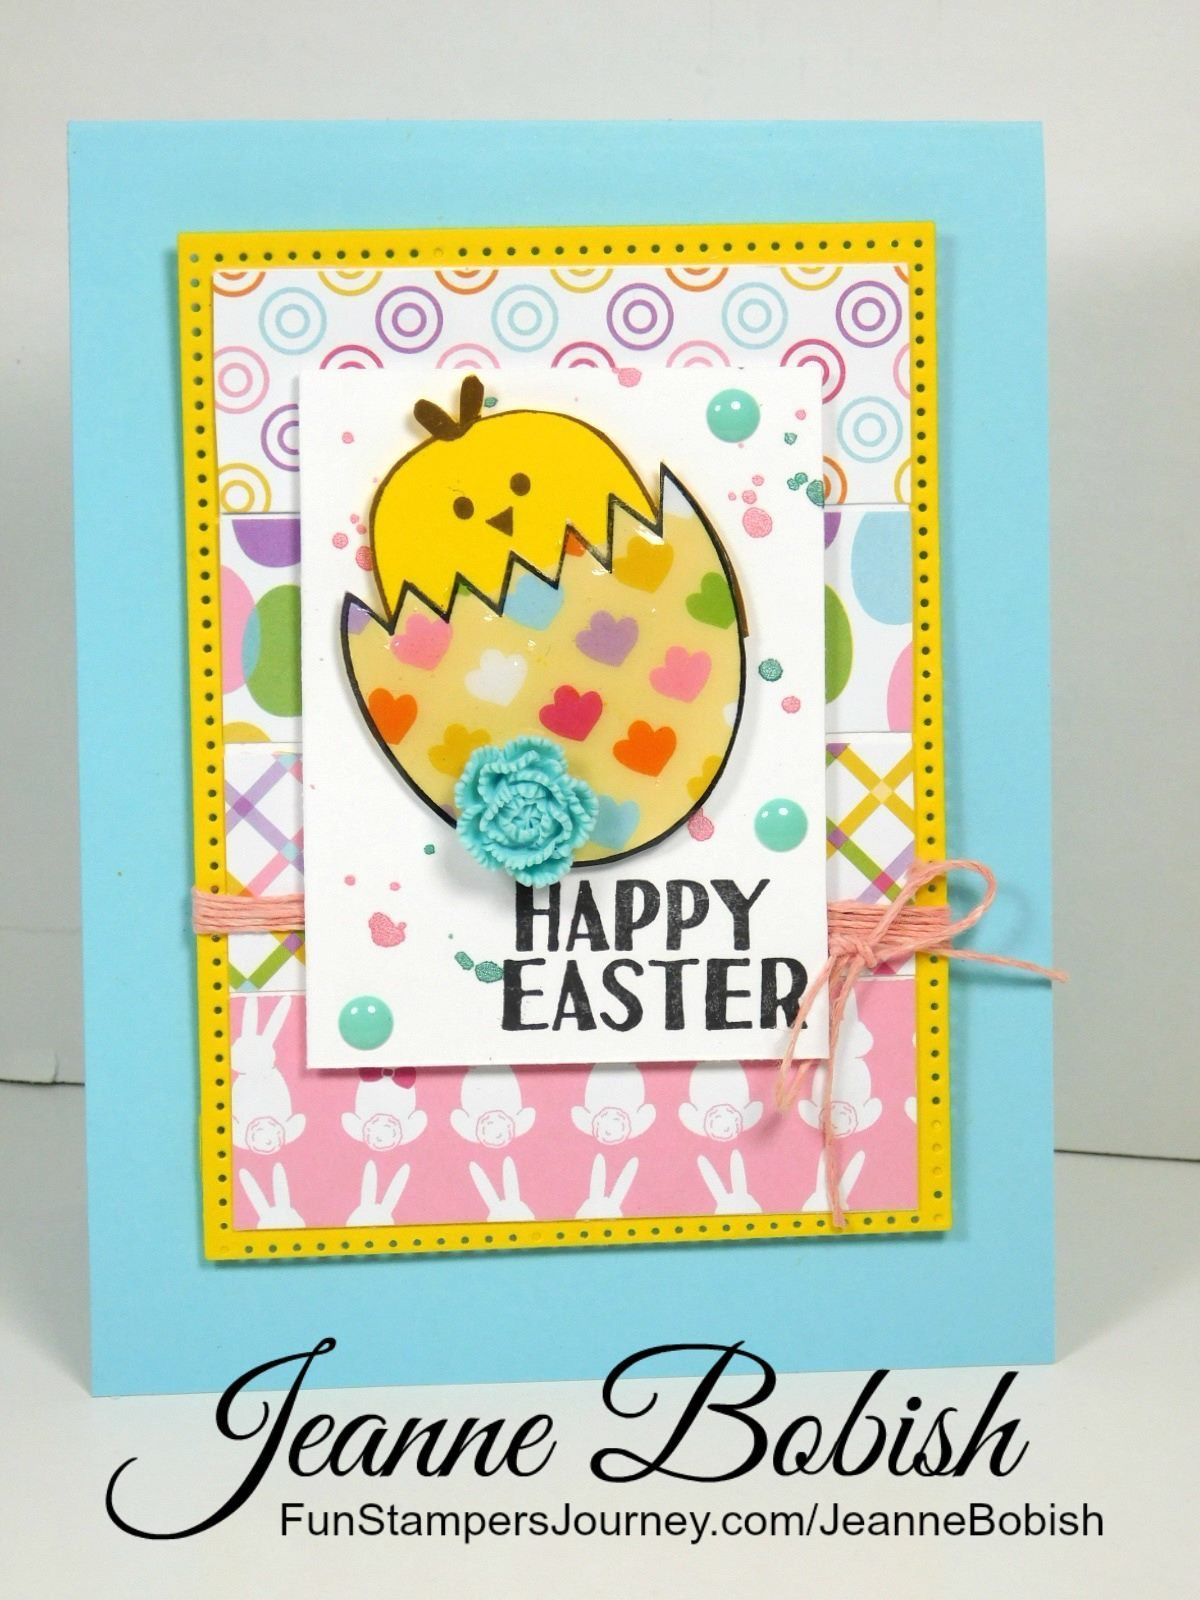 Pin By Fun Stampers Journey Journey Coach Julie Robinson On Card